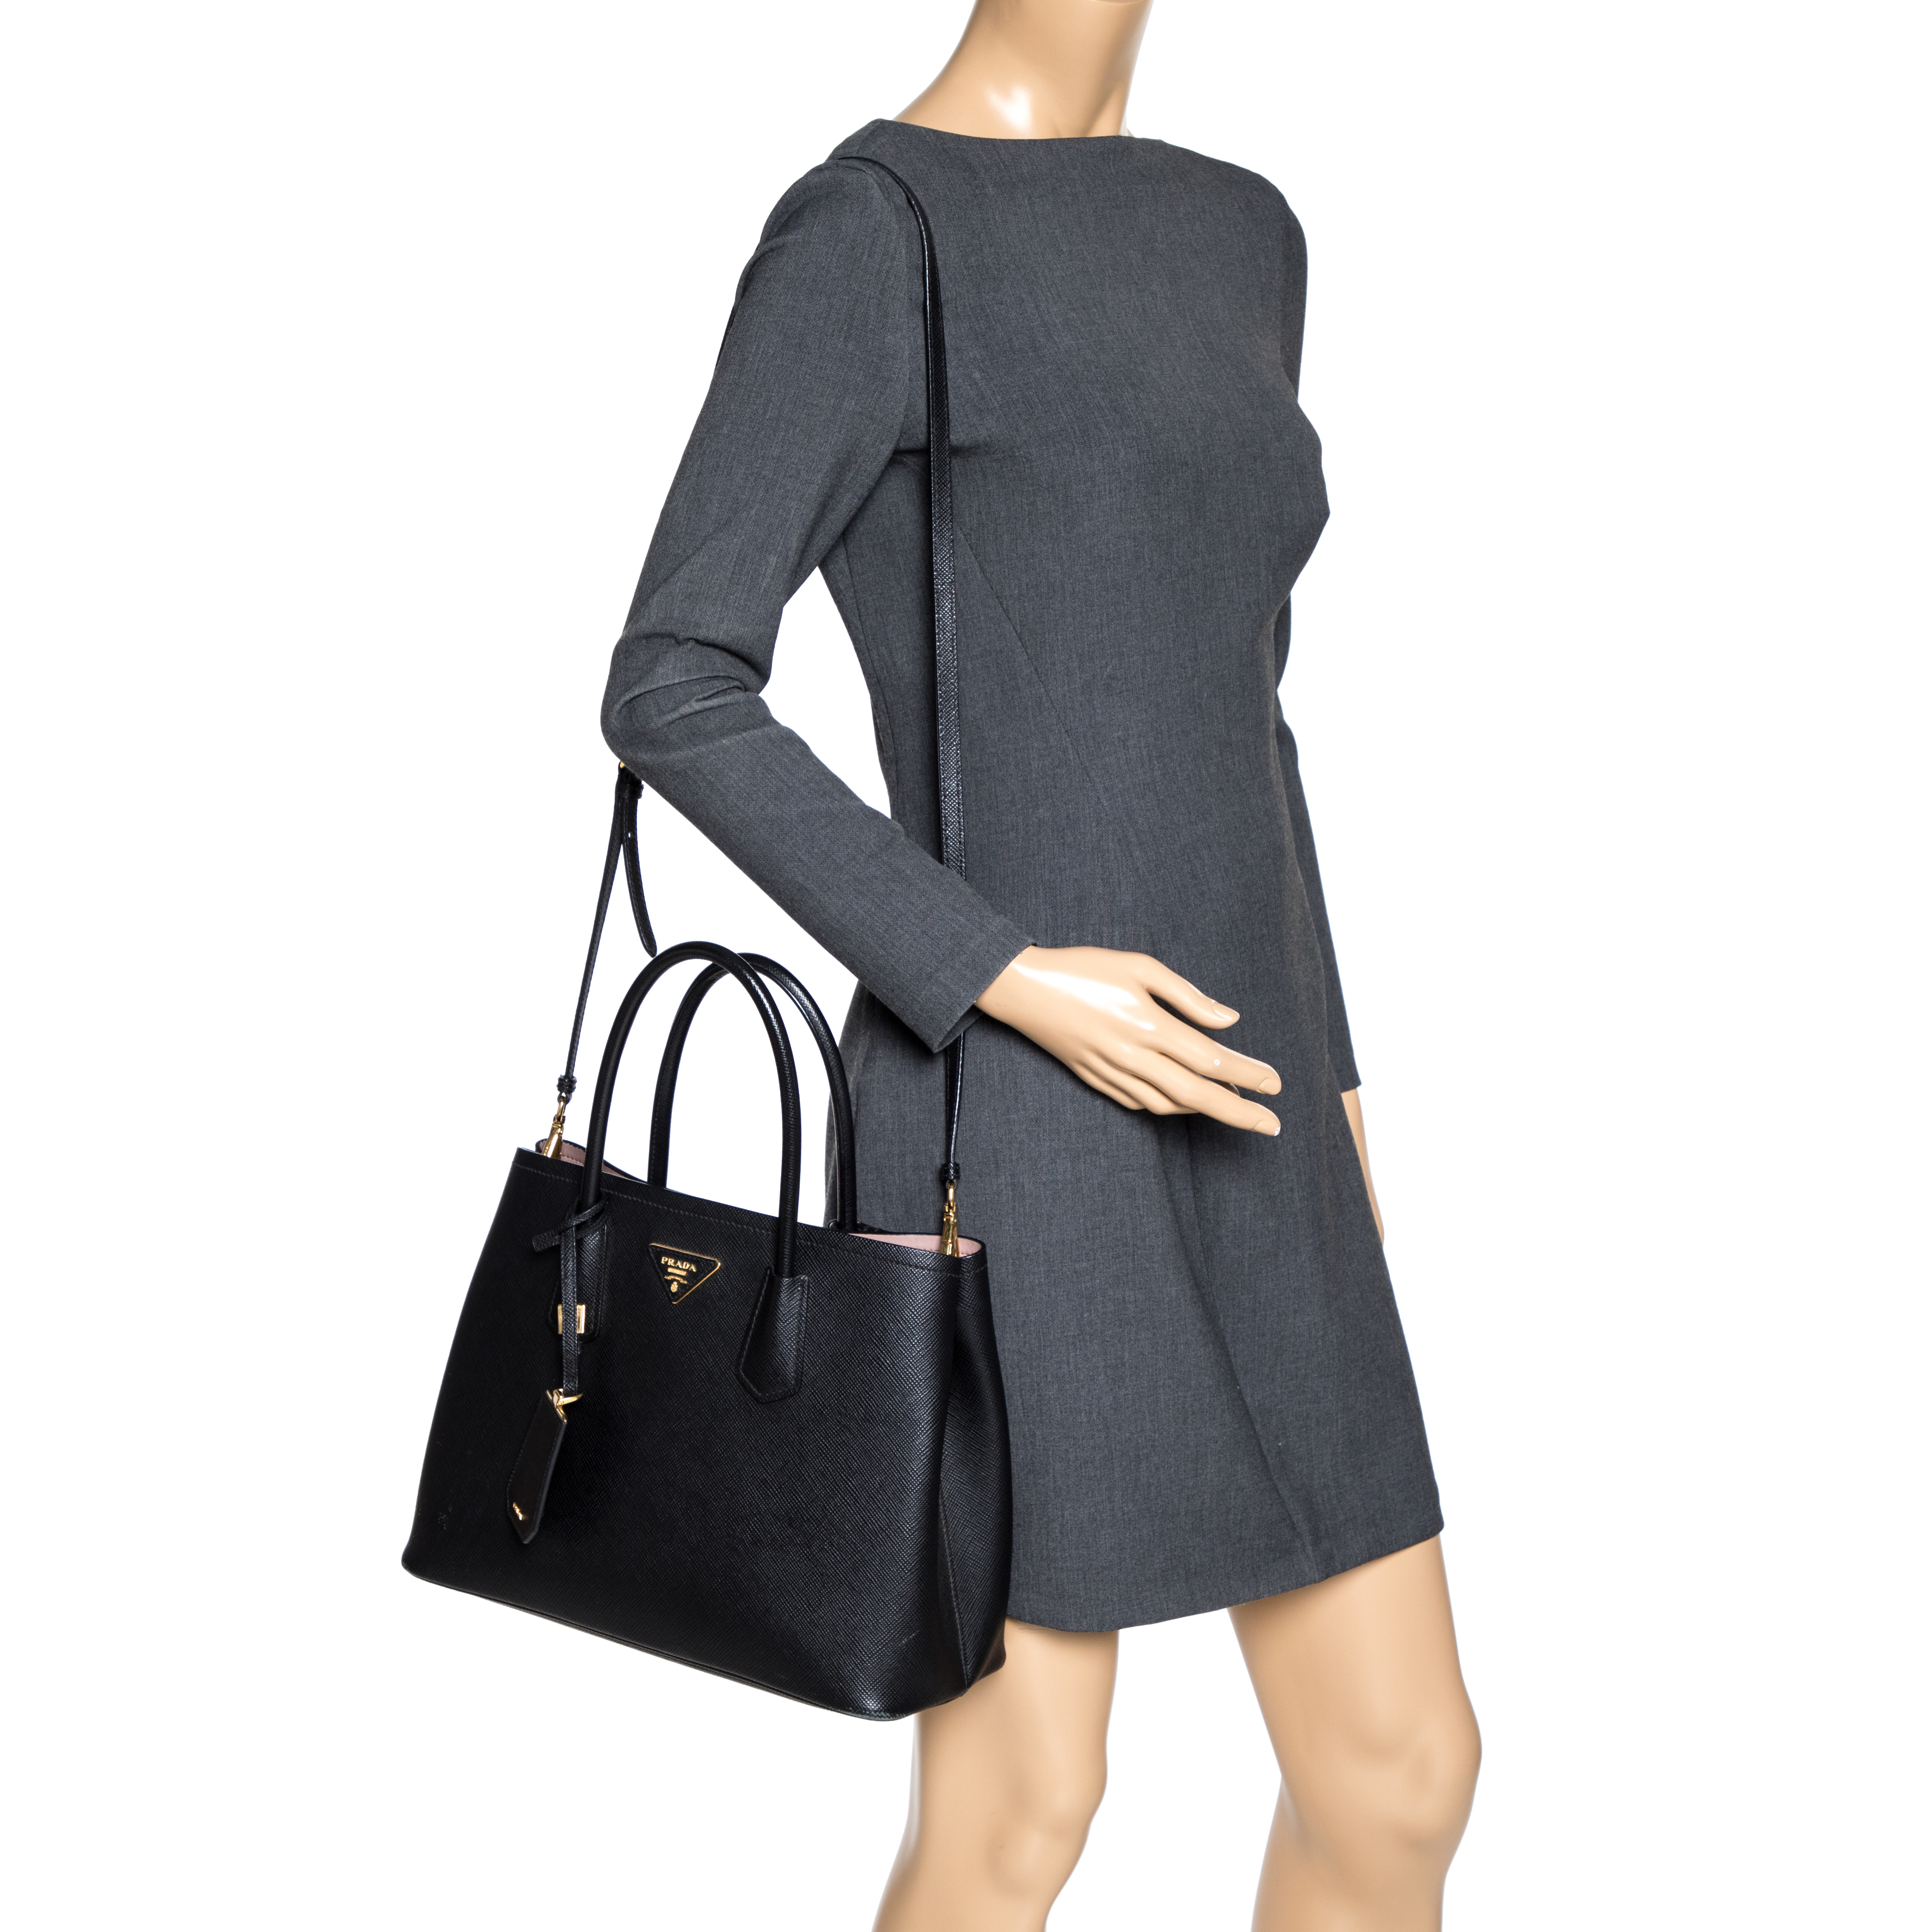 Prada Black Saffiano Lux Leather Double Tote  - buy with discount